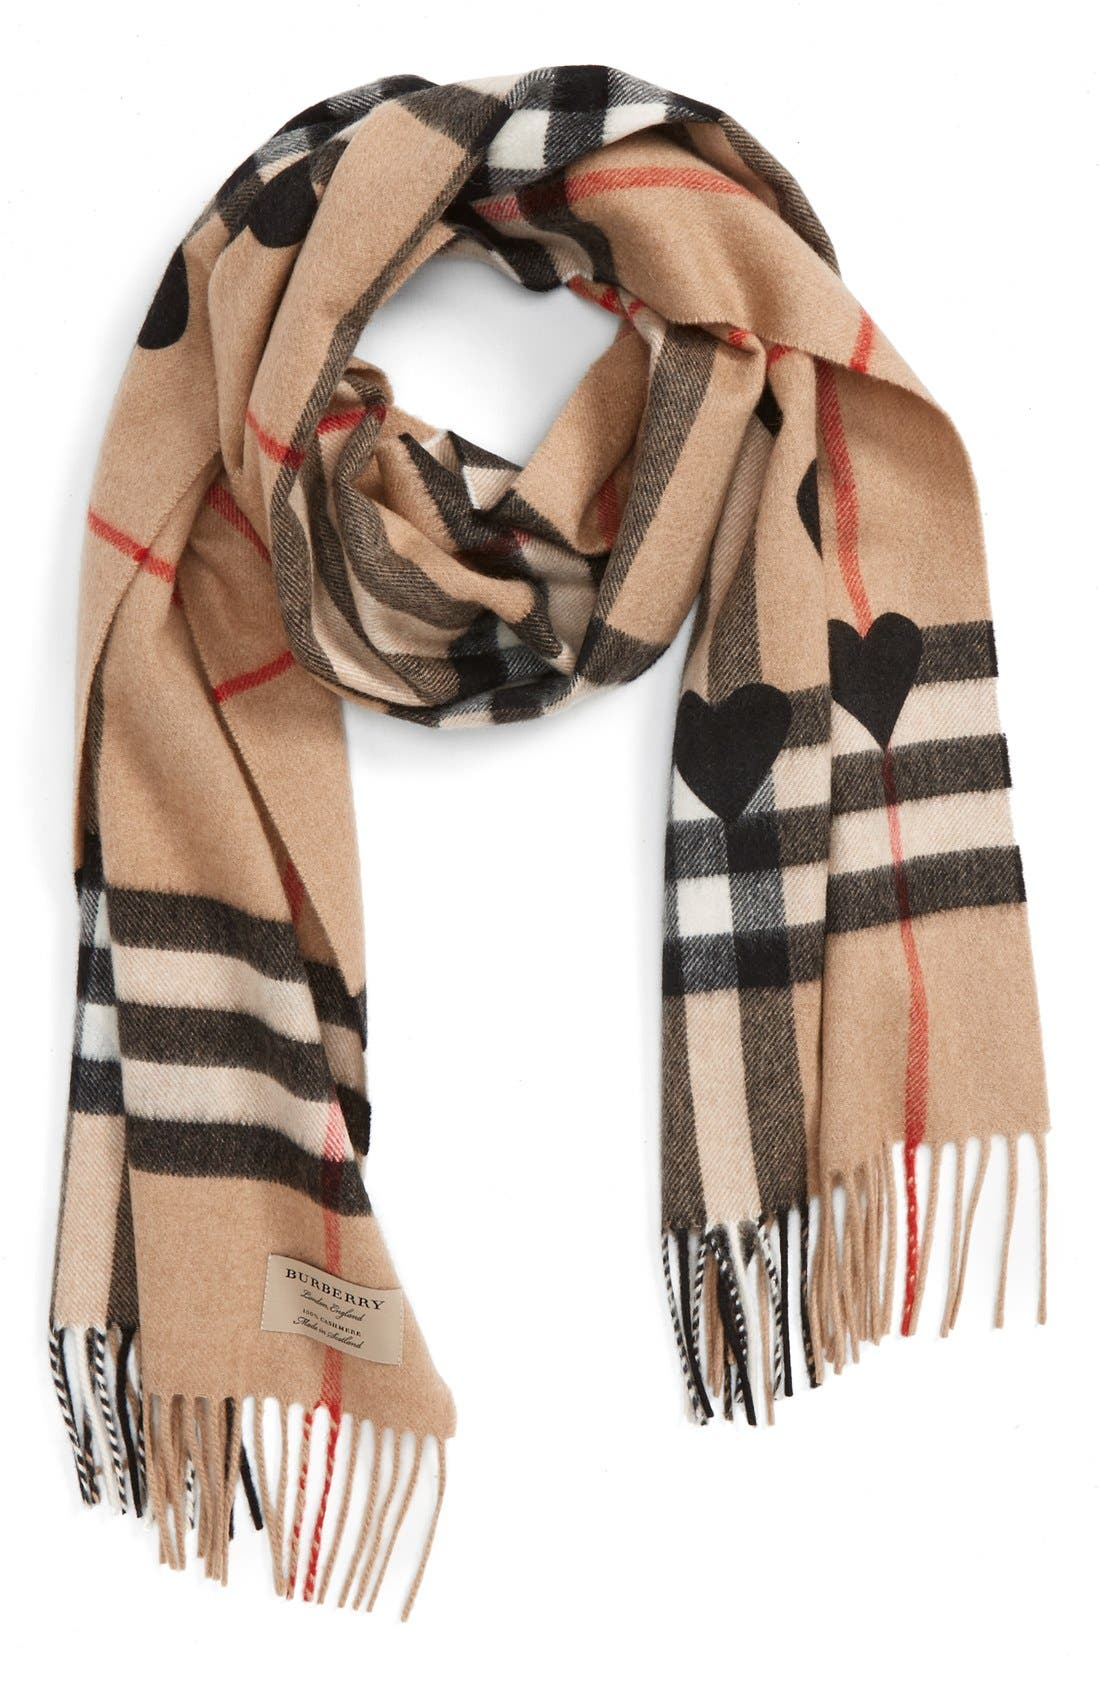 Alternate Image 1 Selected - Burberry Heart & Giant Check Fringed Cashmere Scarf